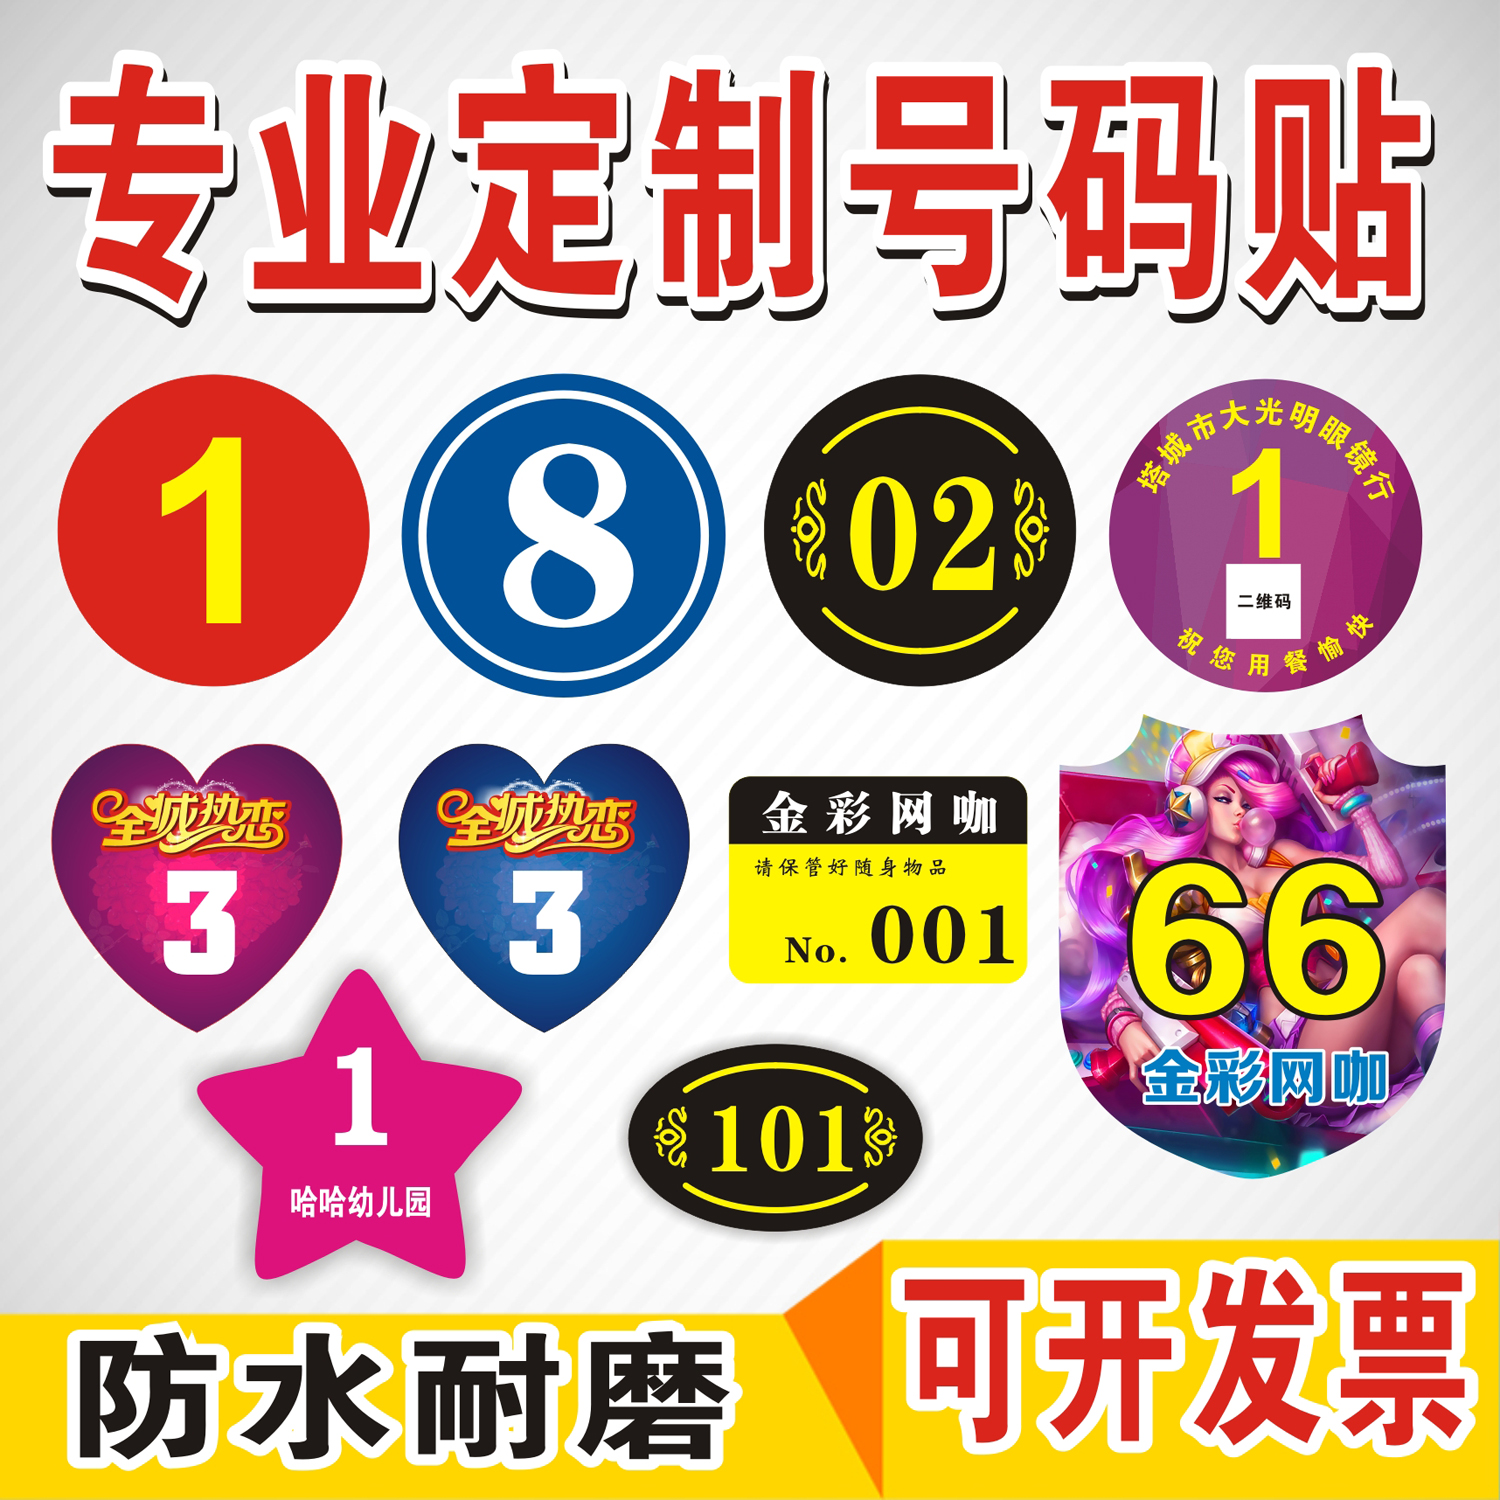 Custom made digital stickers number stickers number activity arm stickers door net bar stickers table waterproof seat stickers